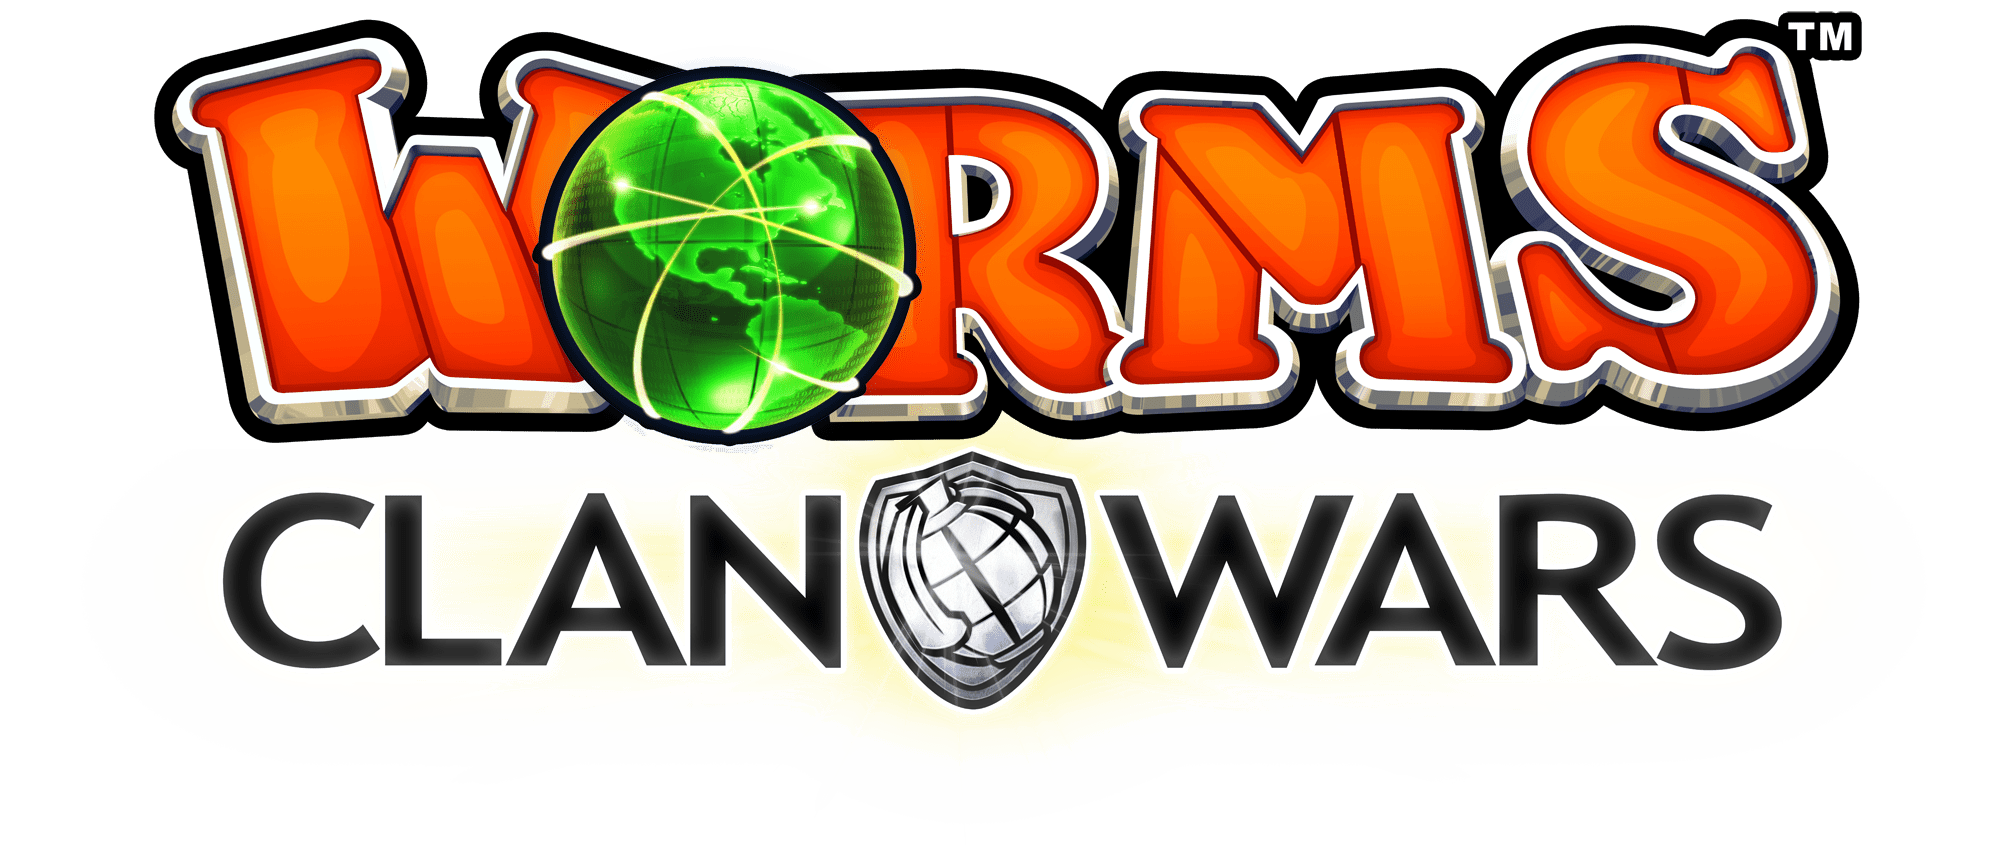 Worms Clan Wars 1.0